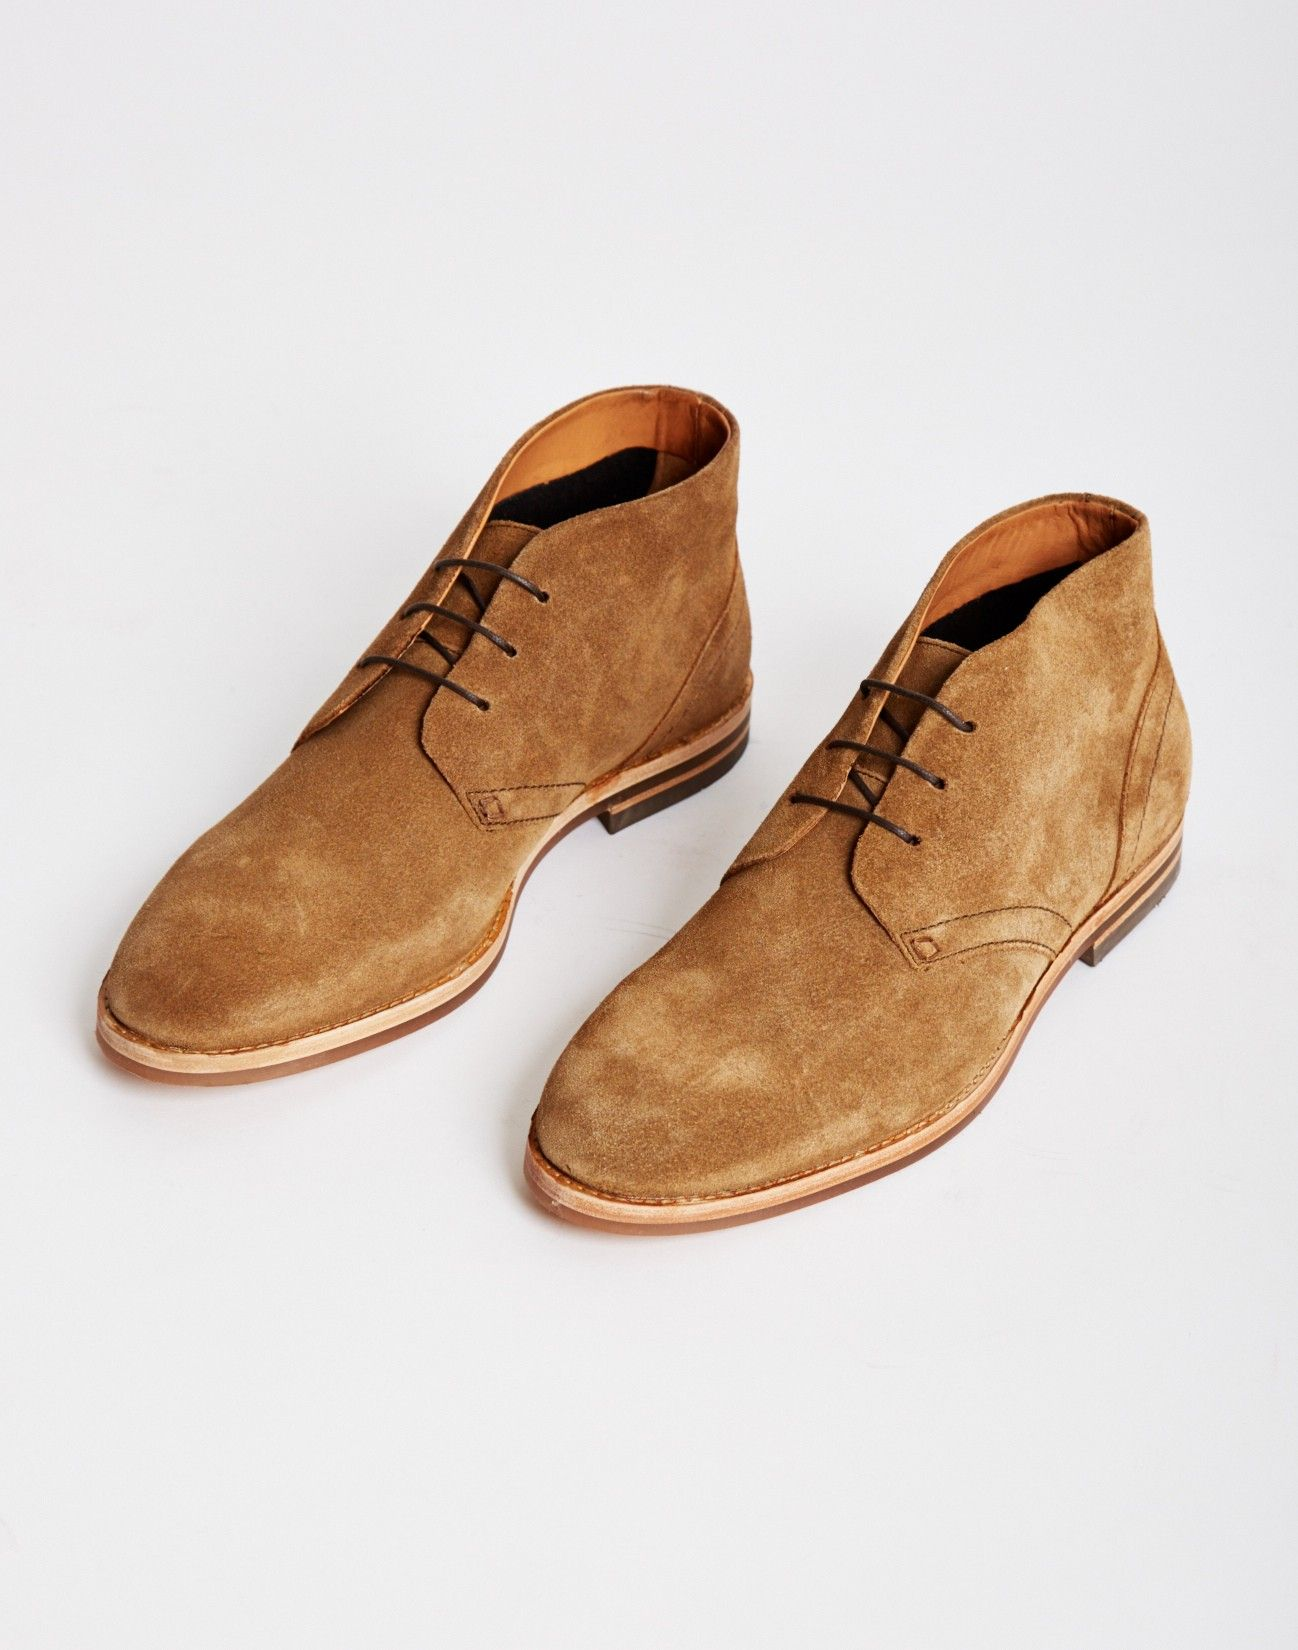 Comfort  Oxford and Finch Men's Chukka Boots Sand